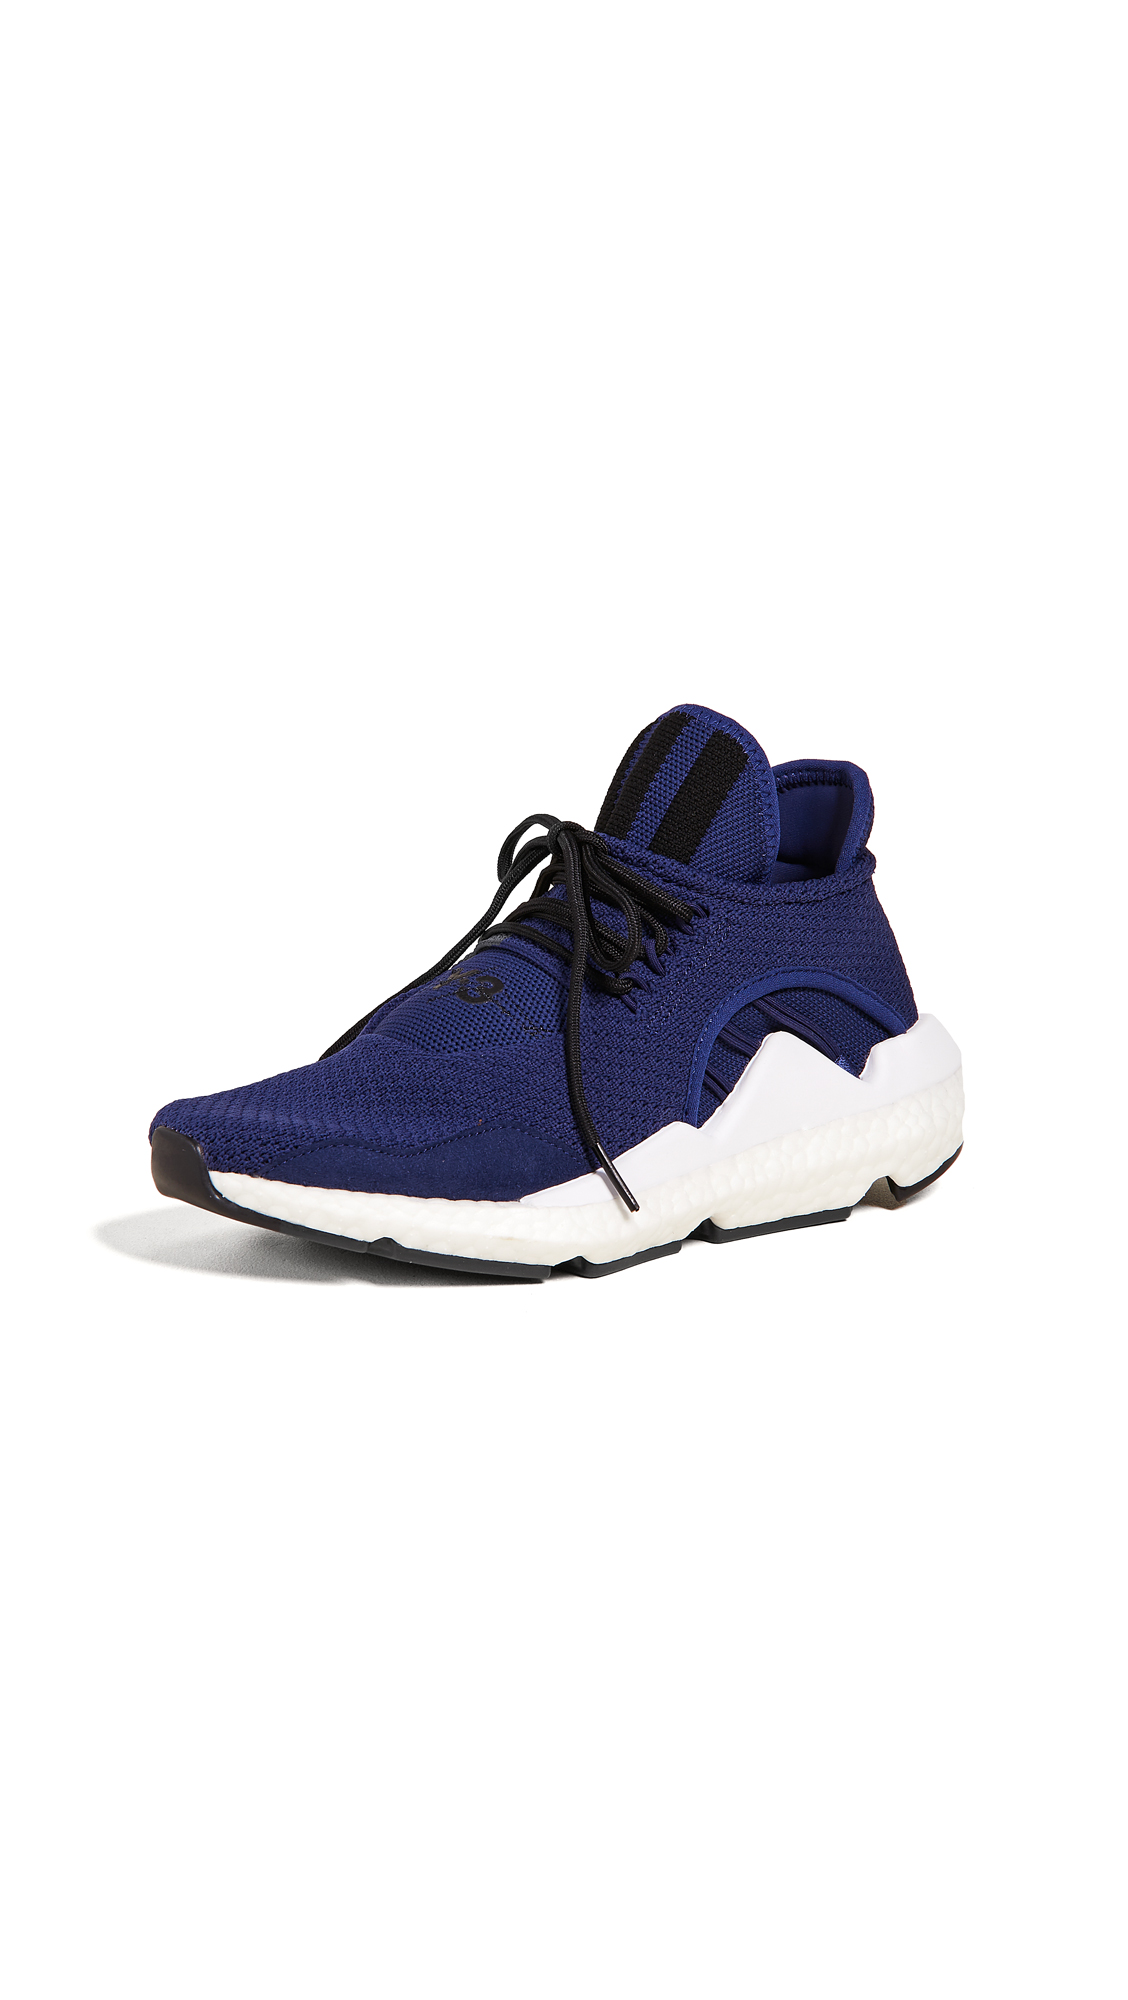 Y-3 Y-3 Saikou Sneakers - Night Indigo